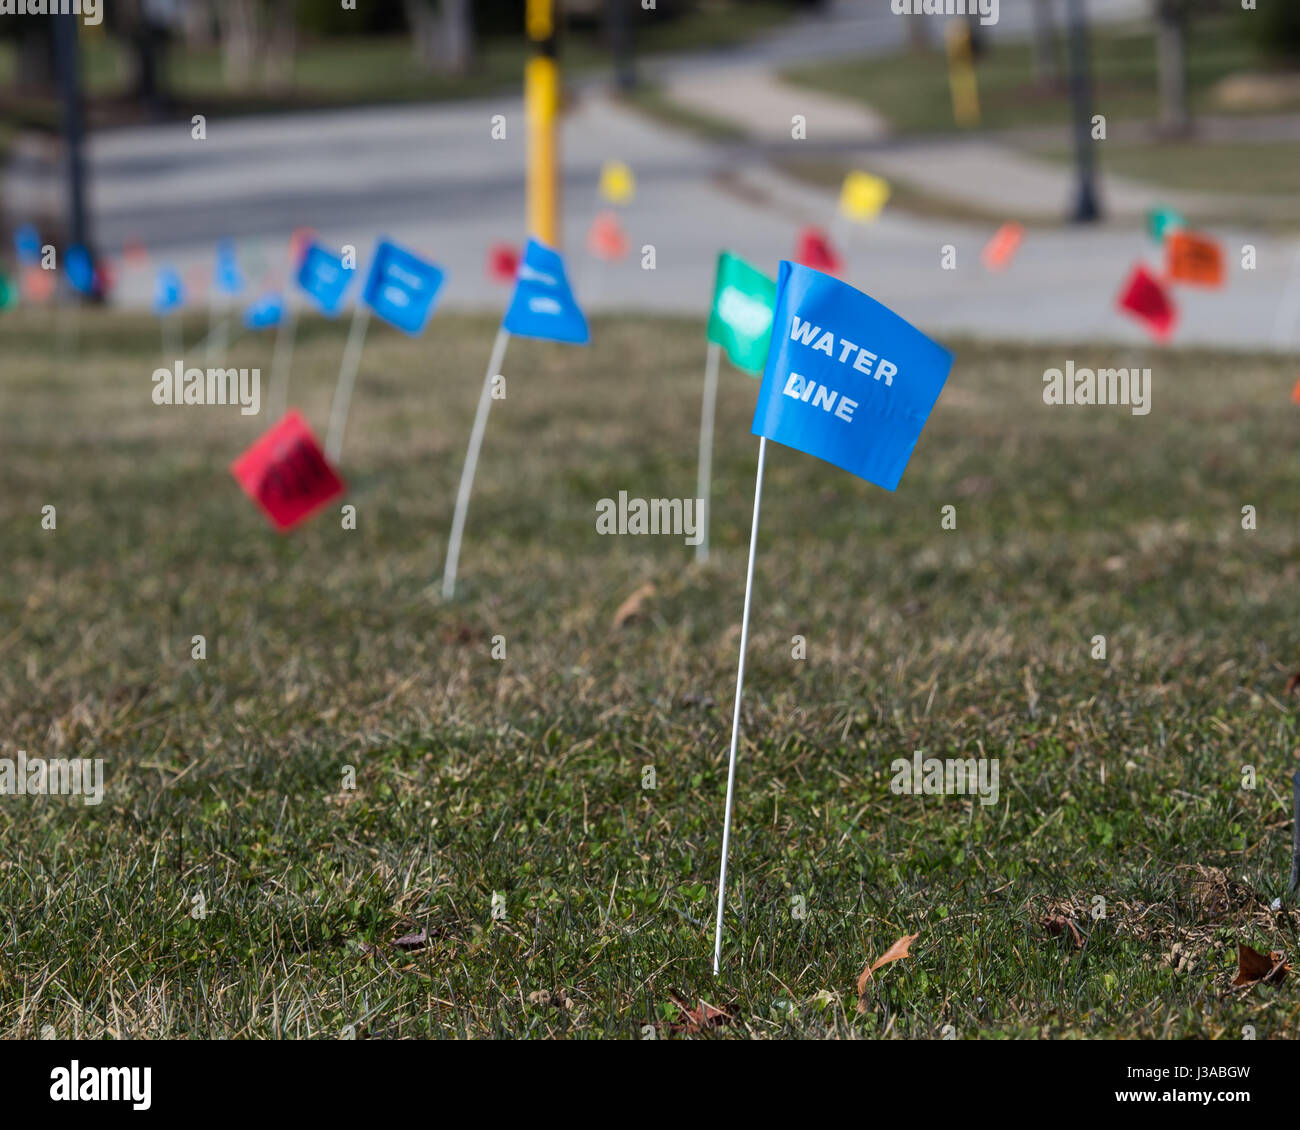 Utilities Location Flag Marking Underground Lines Such As Water, Electric, Telephone, Cable, Natural Gas and Sewer. - Stock Image